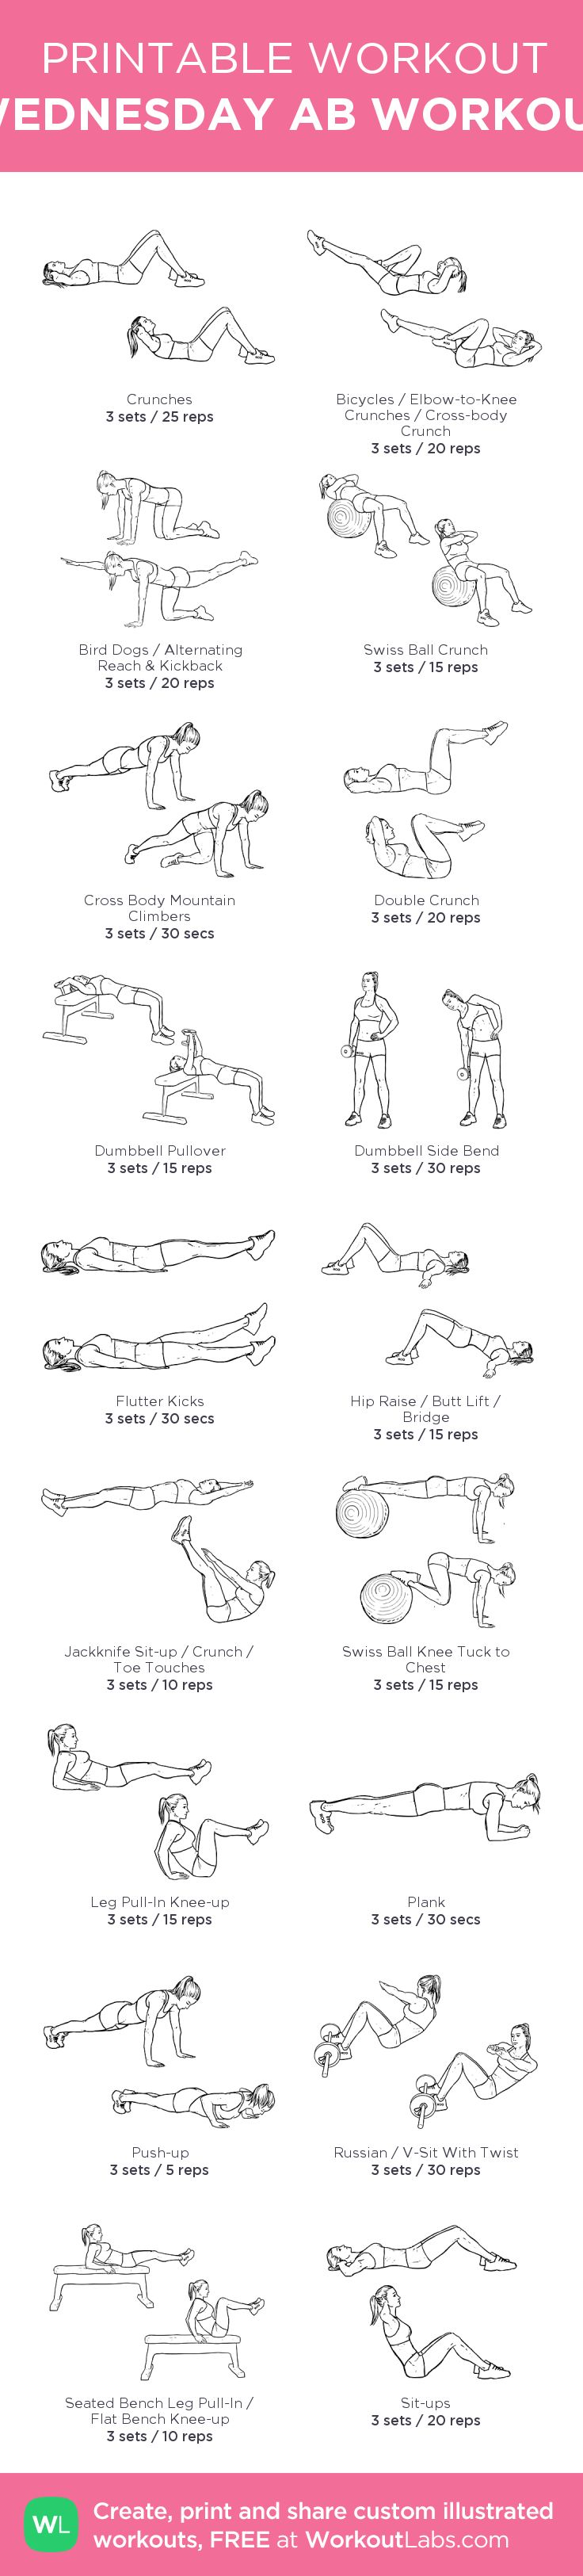 WEDNESDAY AB WORKOUT: my visual workout created at WorkoutLabs.com • Click through to customize and download as a FREE PDF! #customworkout